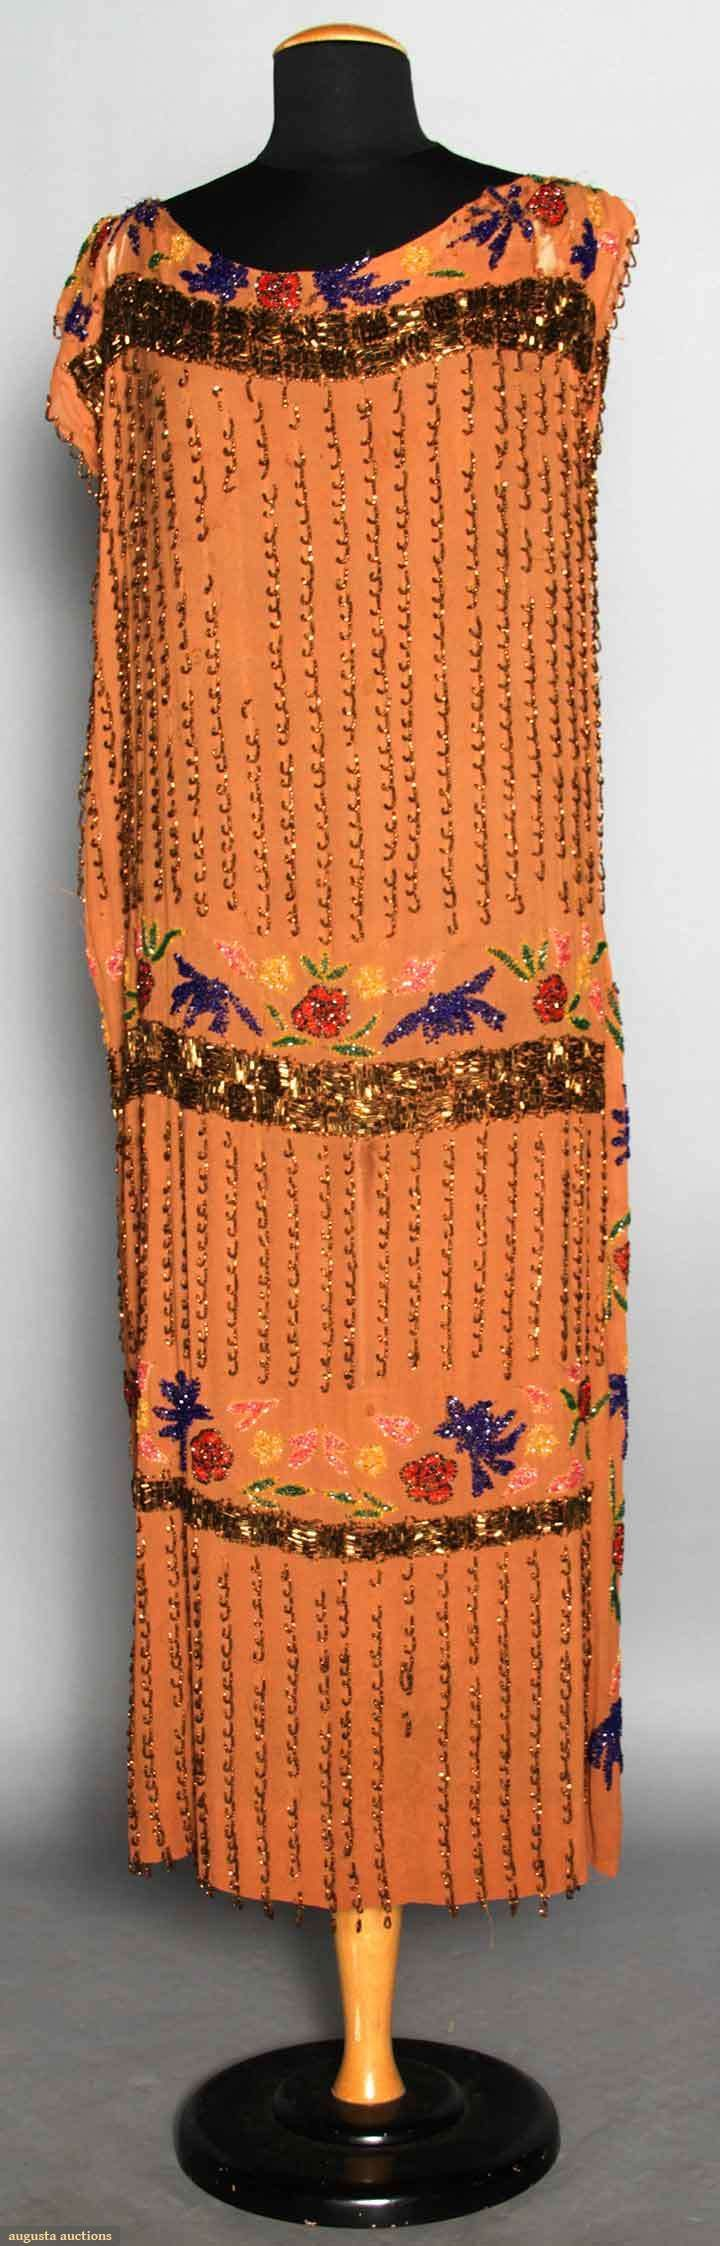 BEADED FLAPPER DRESS  Cocoa brown silk crepe w/ copper carnival glass beads & colorful floral beading.